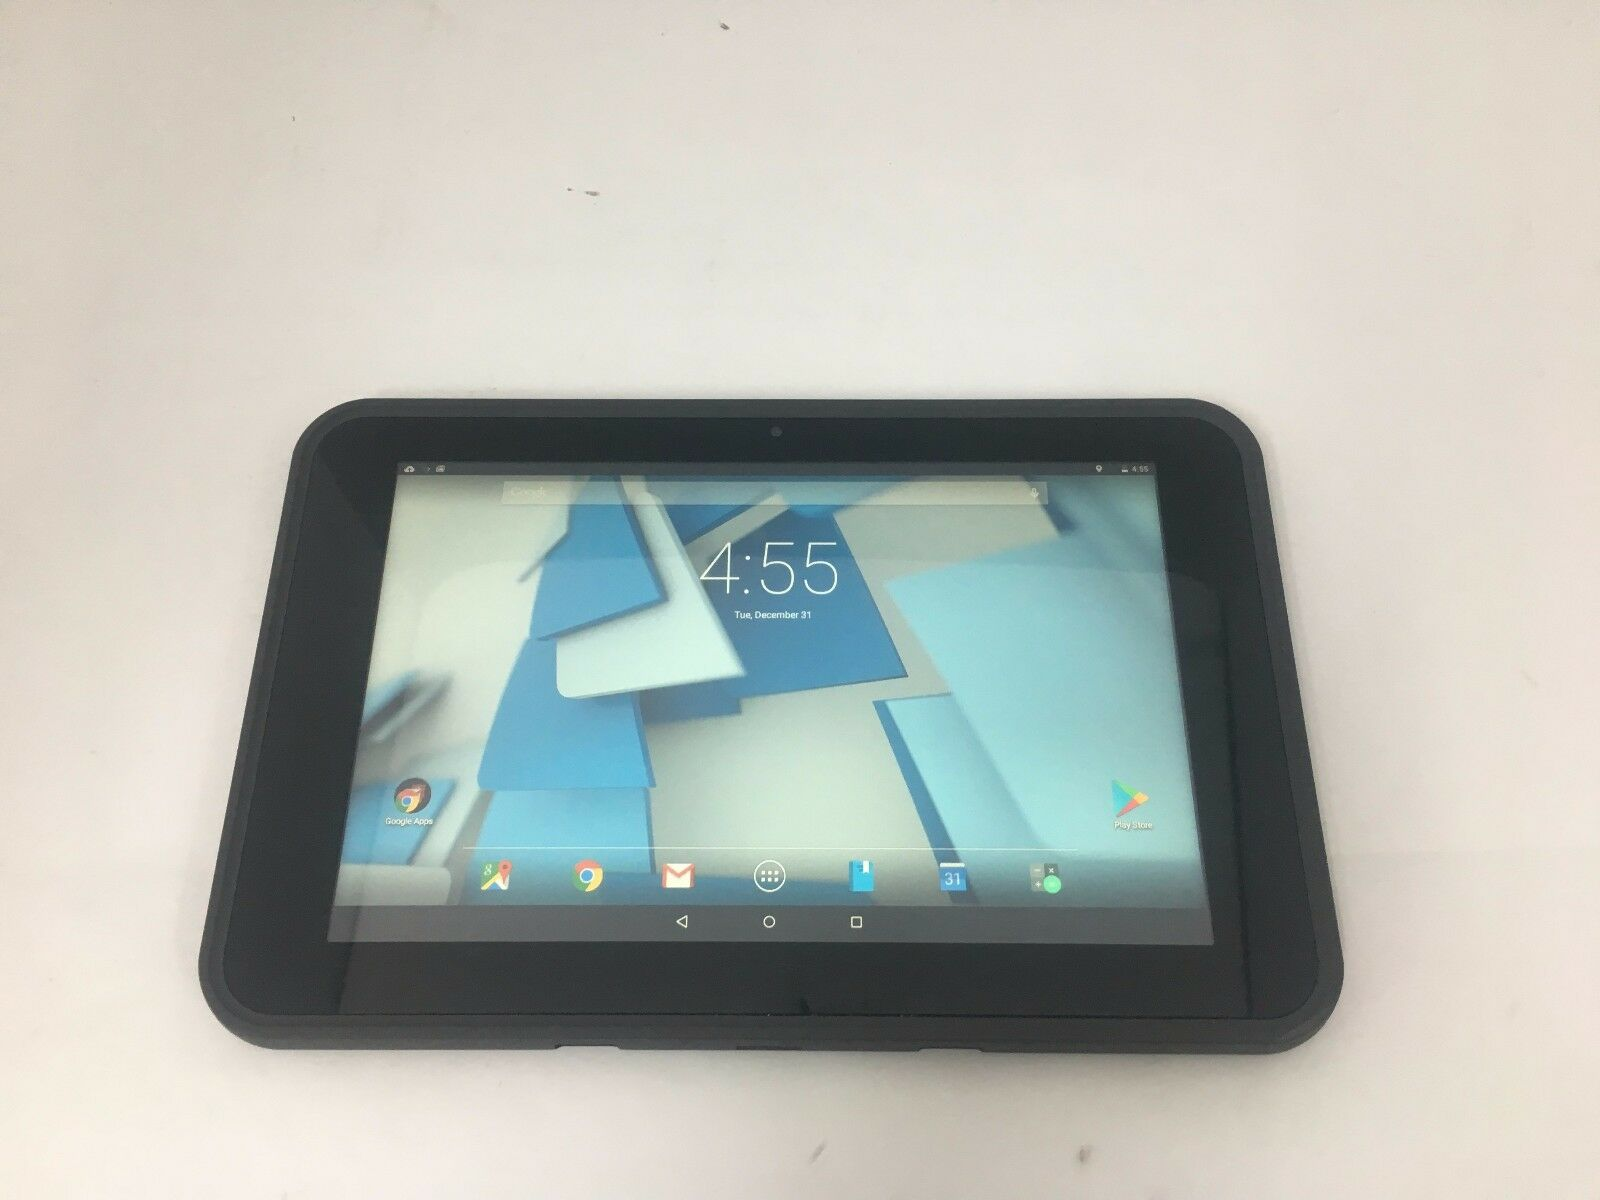 """HP Pro Slate 10 EE G1 Android Tablet 10.1"""" Intel Atom @ 1.33GHz, 2GB RAM, 16GB"""